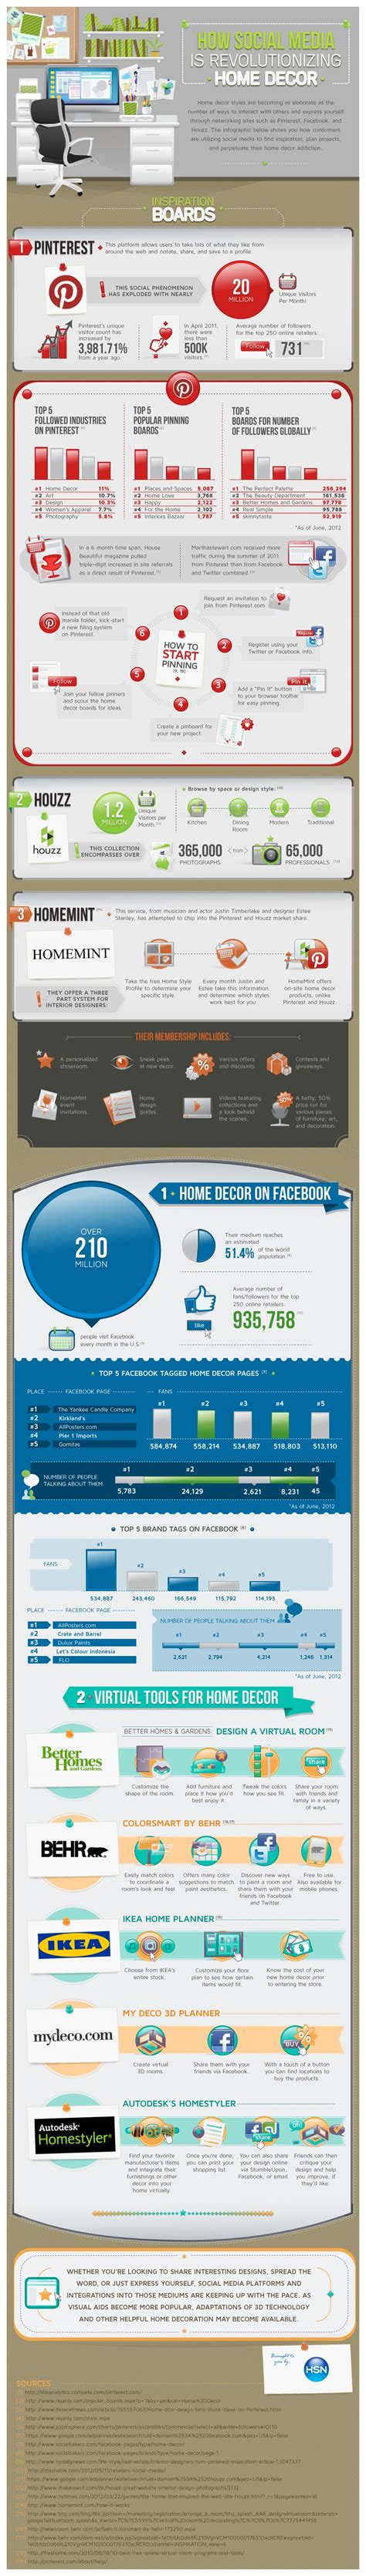 home decor infographic social media is tranforming home design space infographic